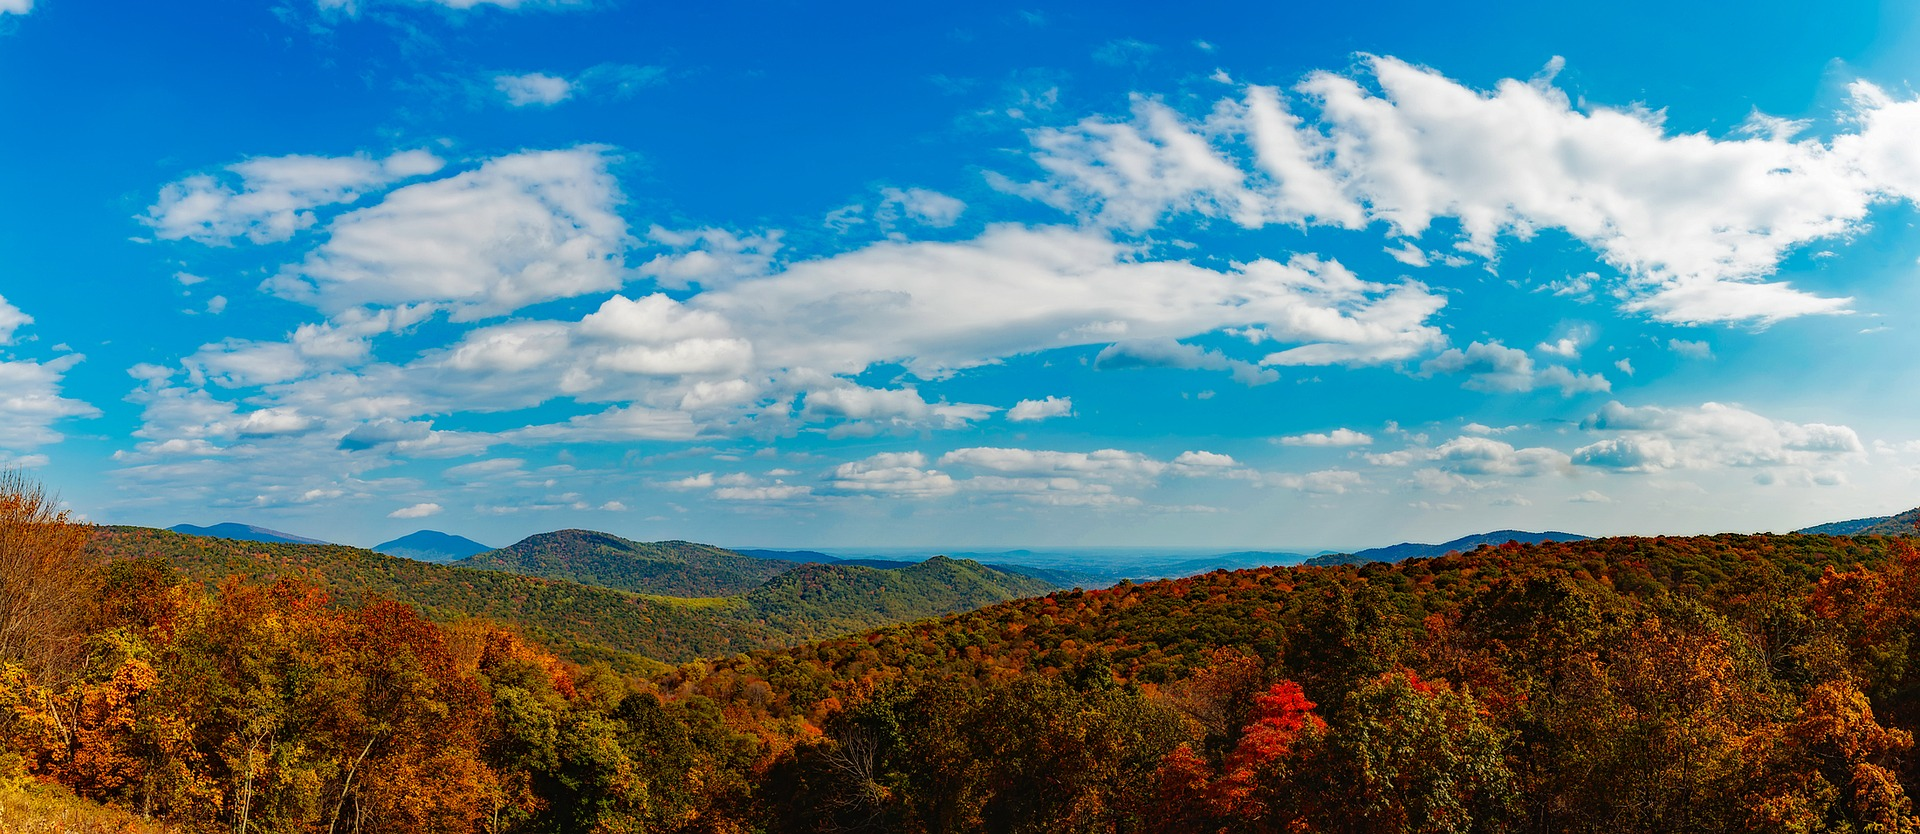 Shenandoah Valley - Best Fall Vacations in the U.S.